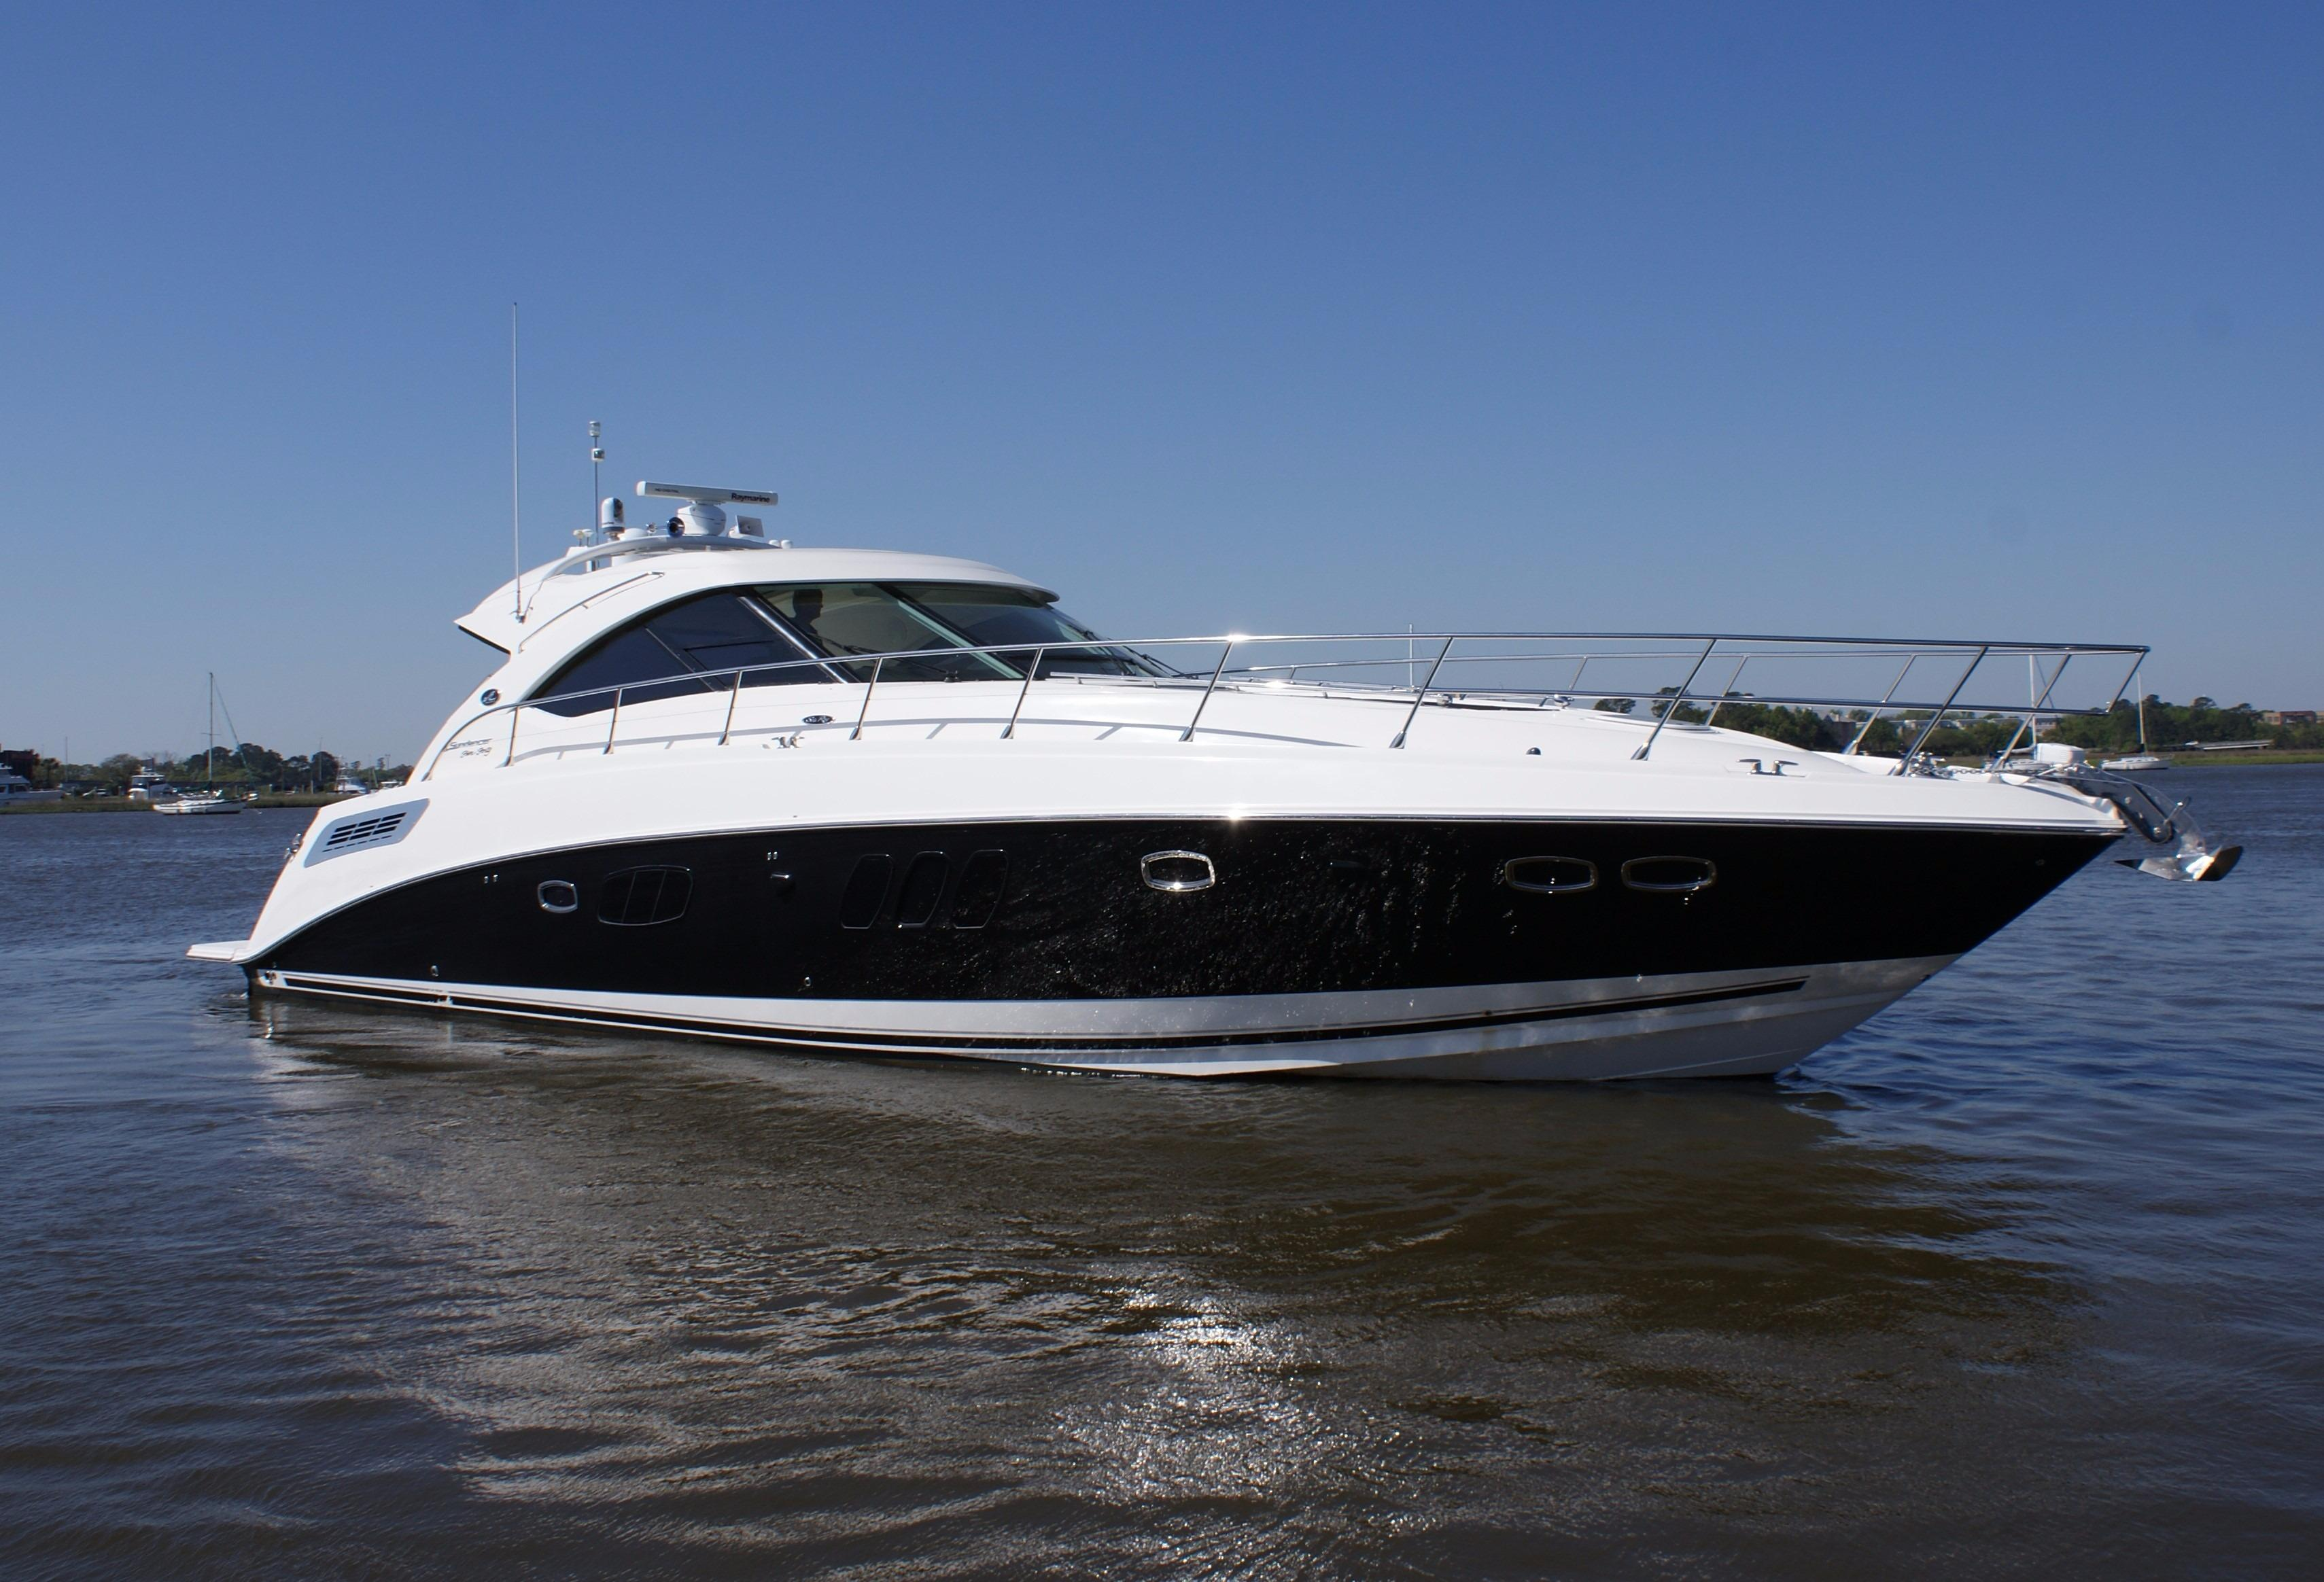 54 sea ray 2011 for sale in charleston south carolina us for Sea ray motor yacht for sale